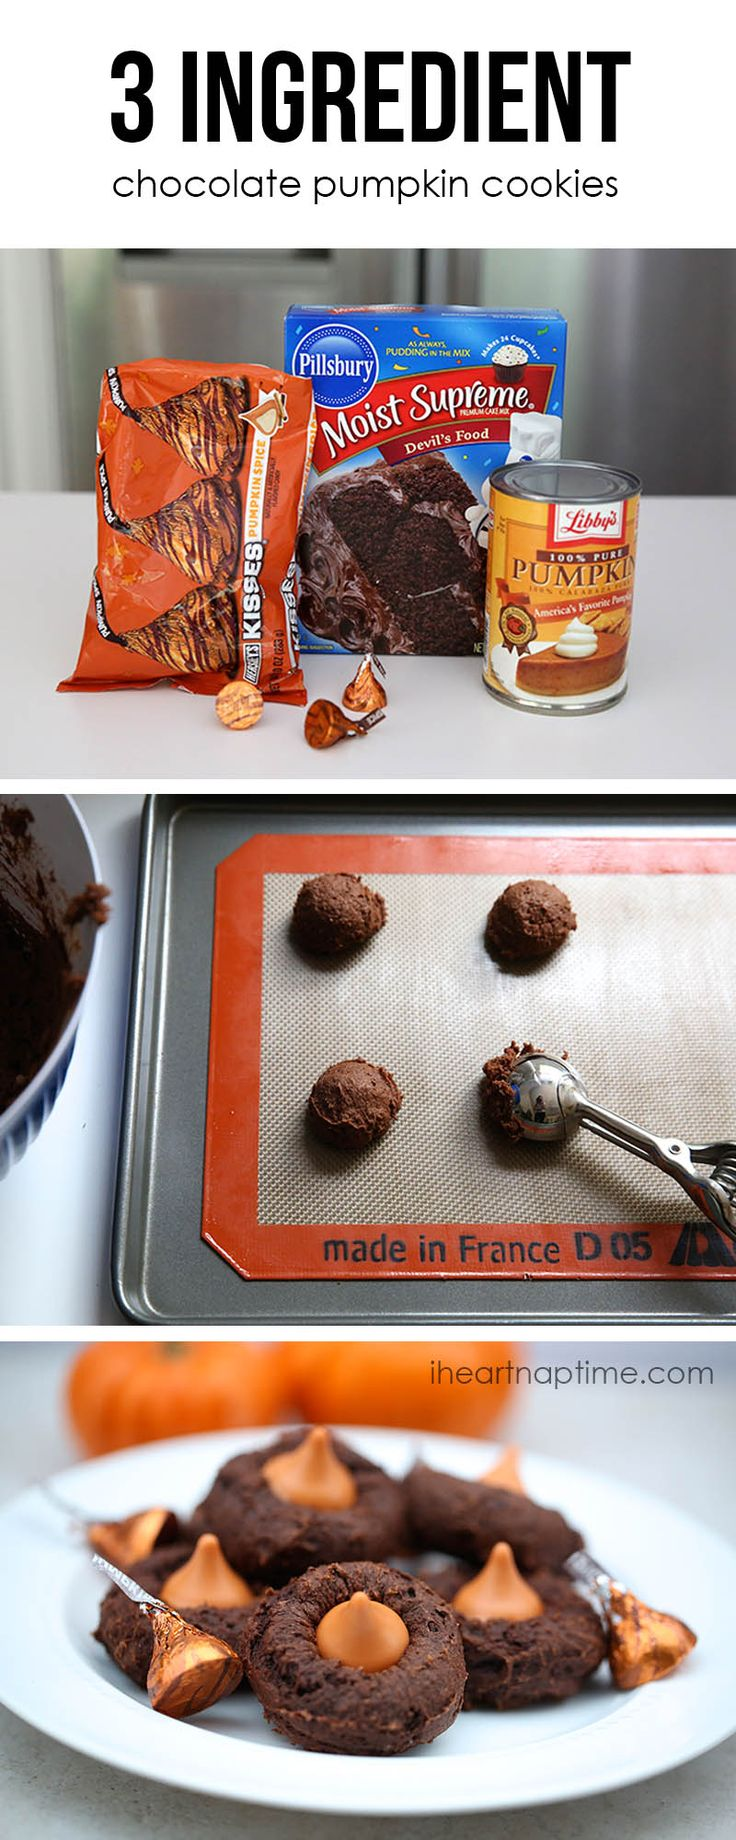 3 ingredient chocolate pumpkin kiss cookies recipe ...so easy and yummy!